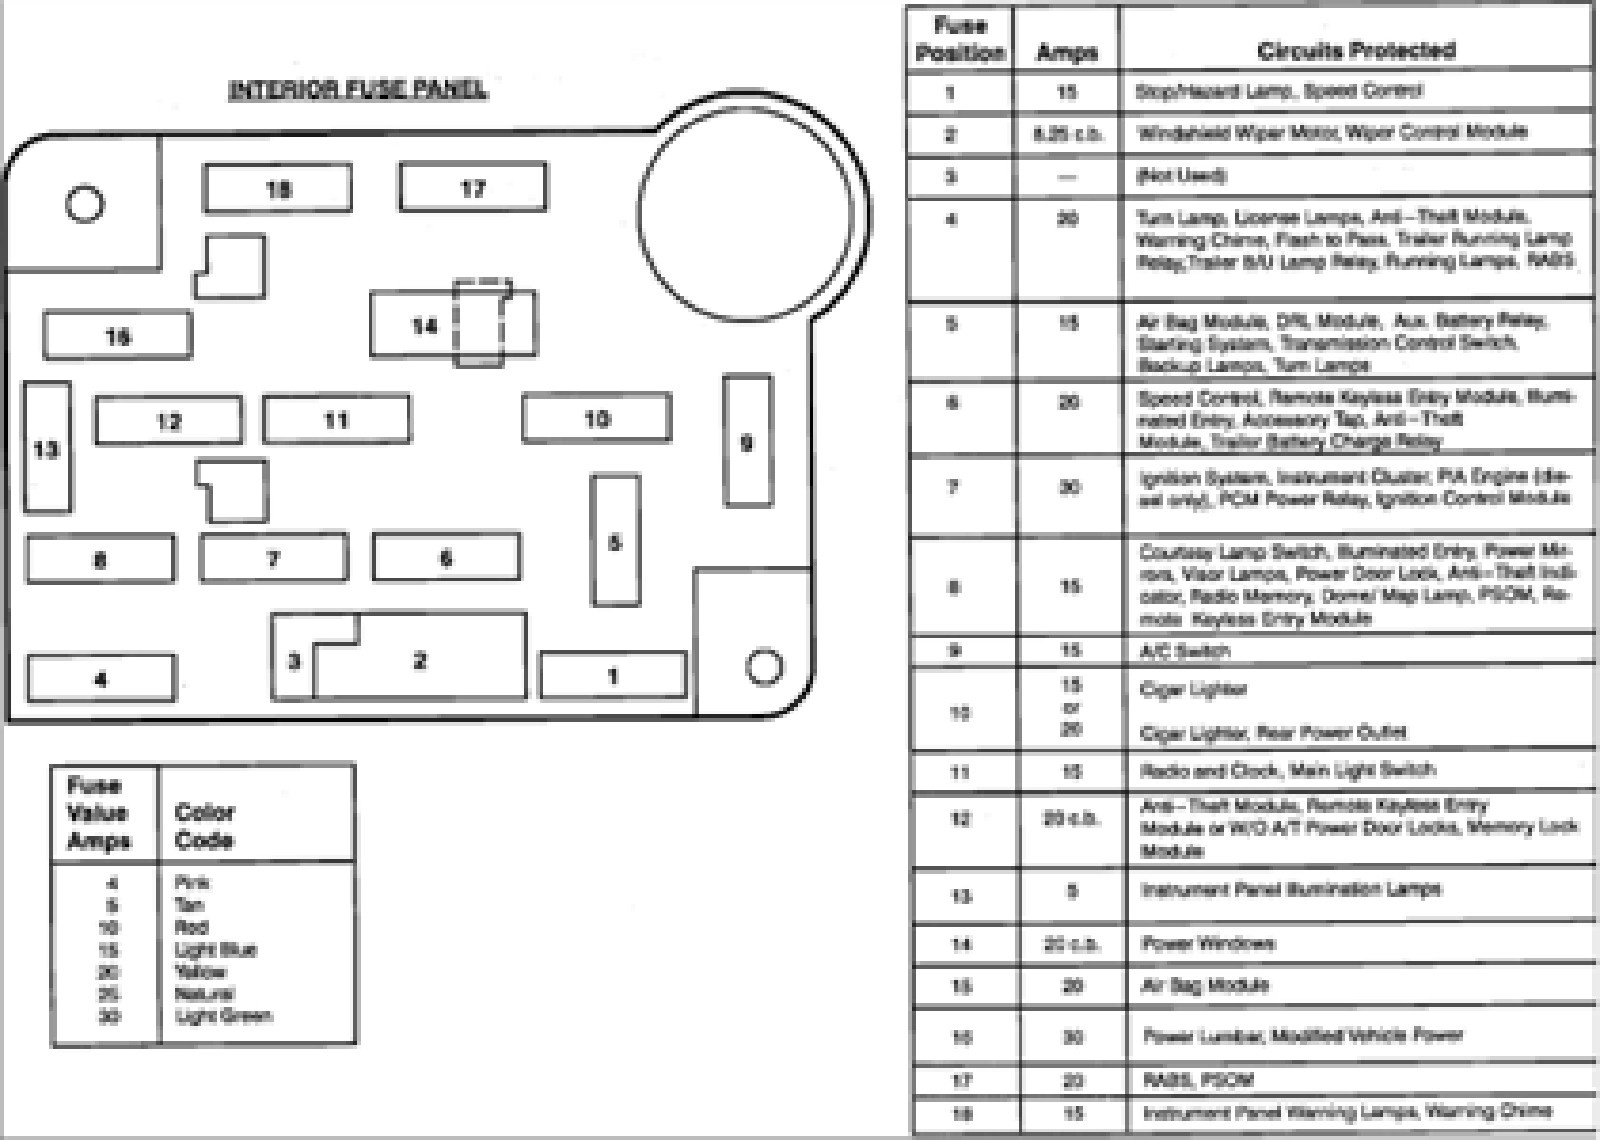 Stereo Wiring Diagram Furthermore 1997 Acura Integra Wiring Diagram